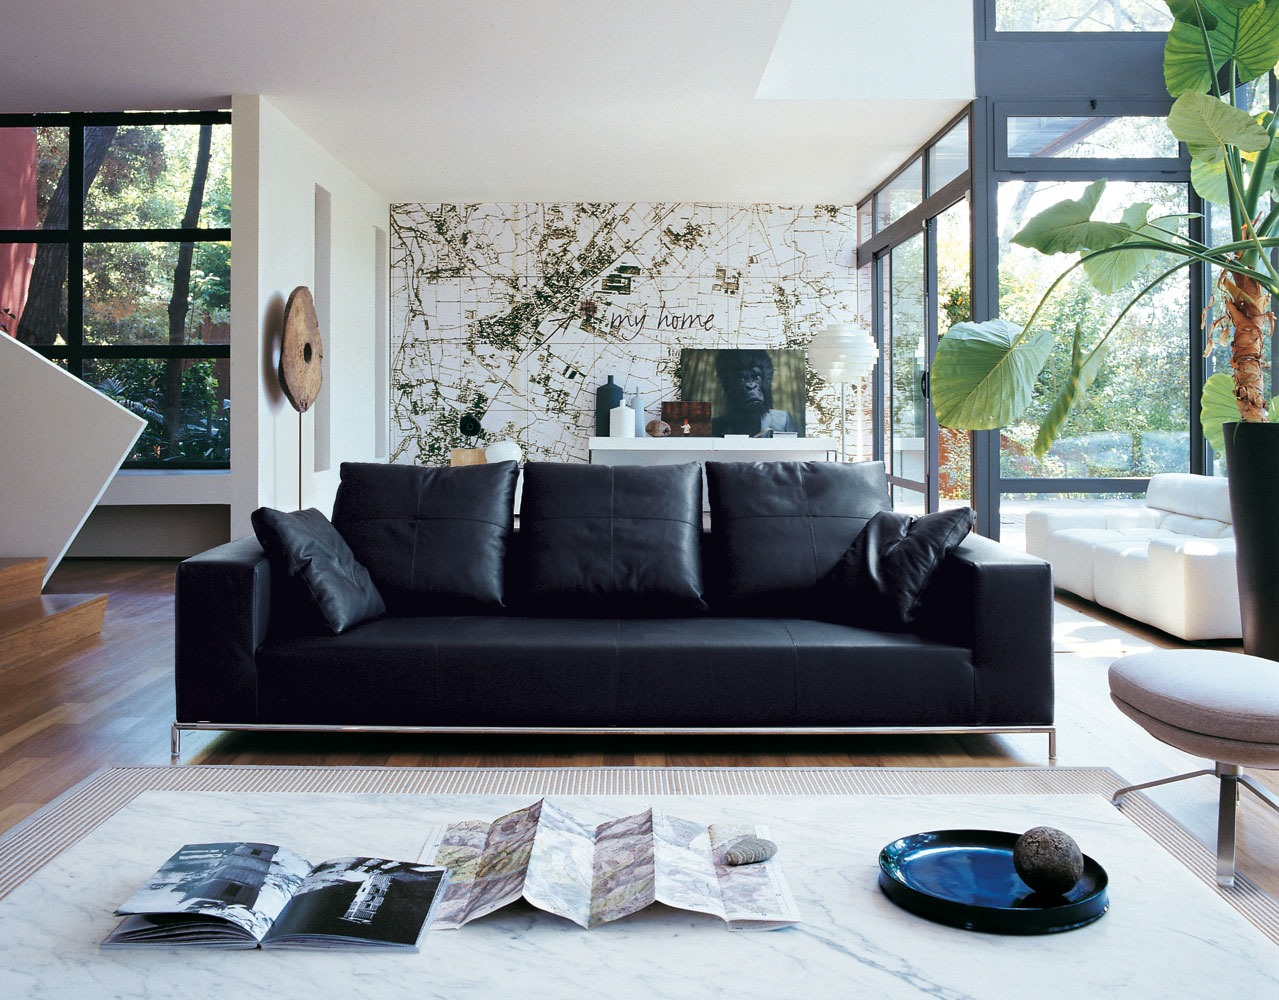 leather furniture for small living room orange paint ideas just chill be relax on luxury sofa deluxe design black white